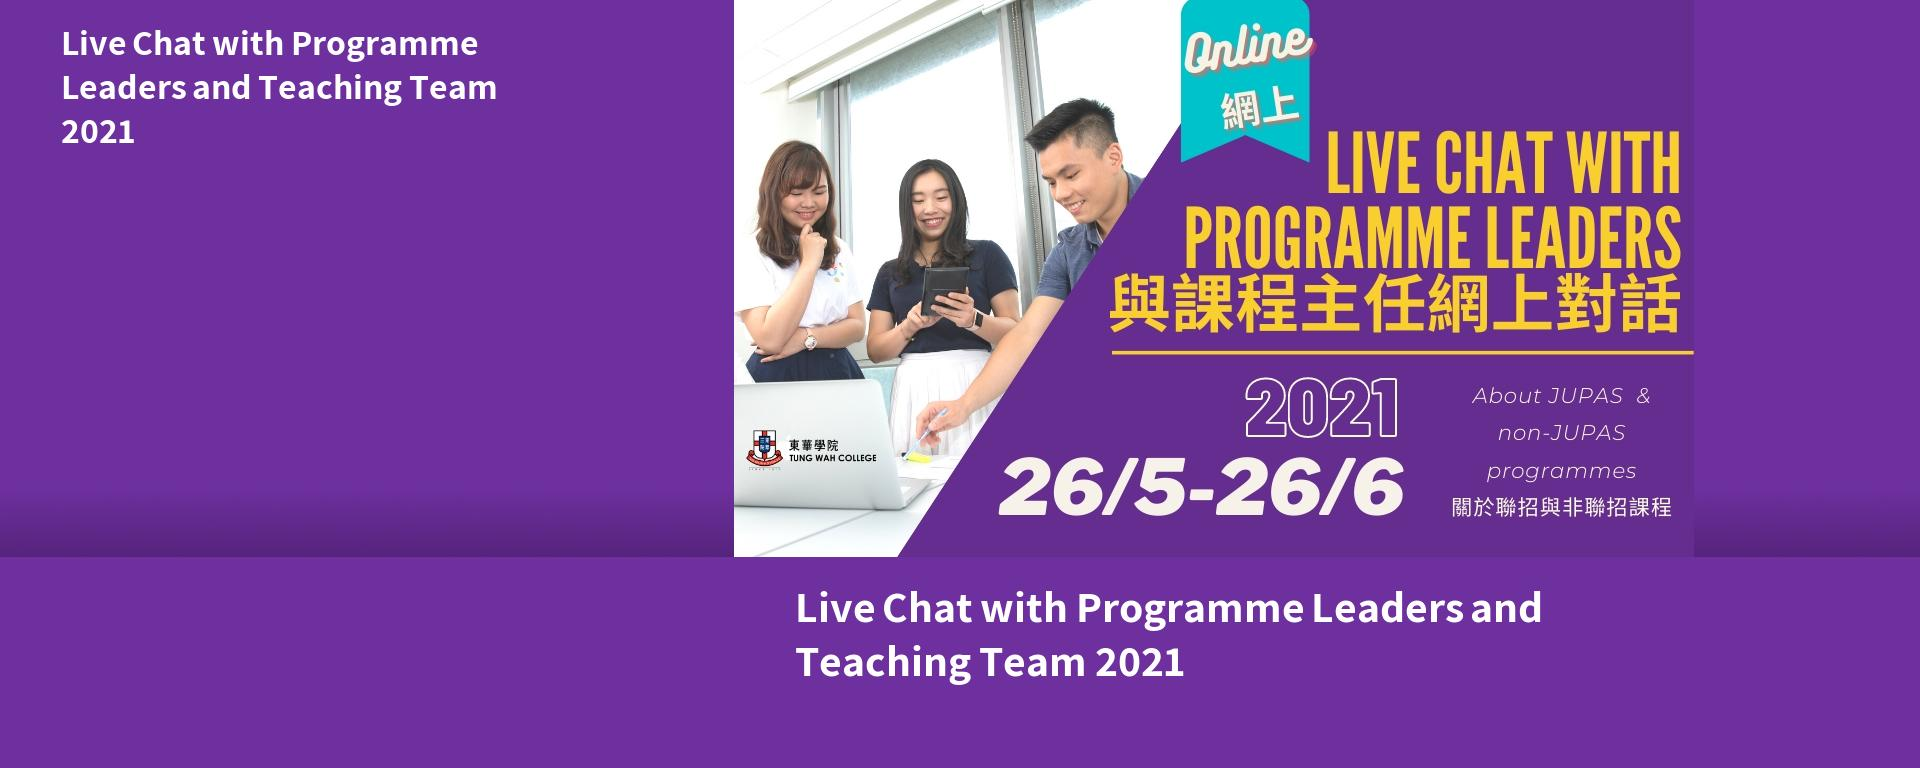 Live Chat with Programme Leaders and Teaching Team 2021